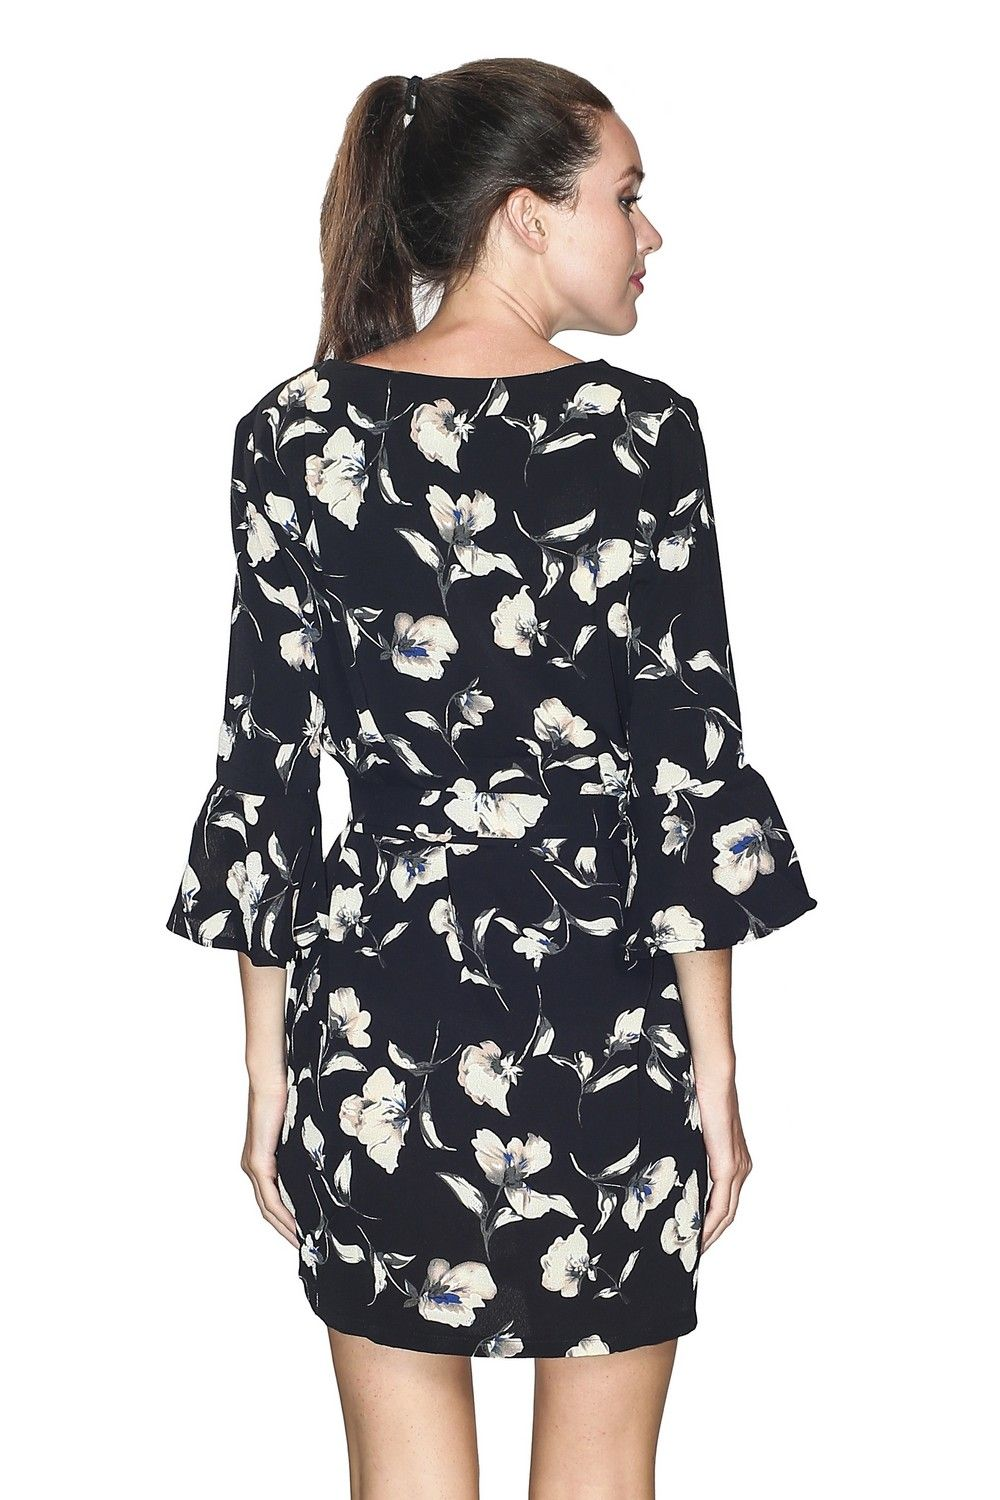 Assuili Fluted Sleeve Floral Print Dress in Black